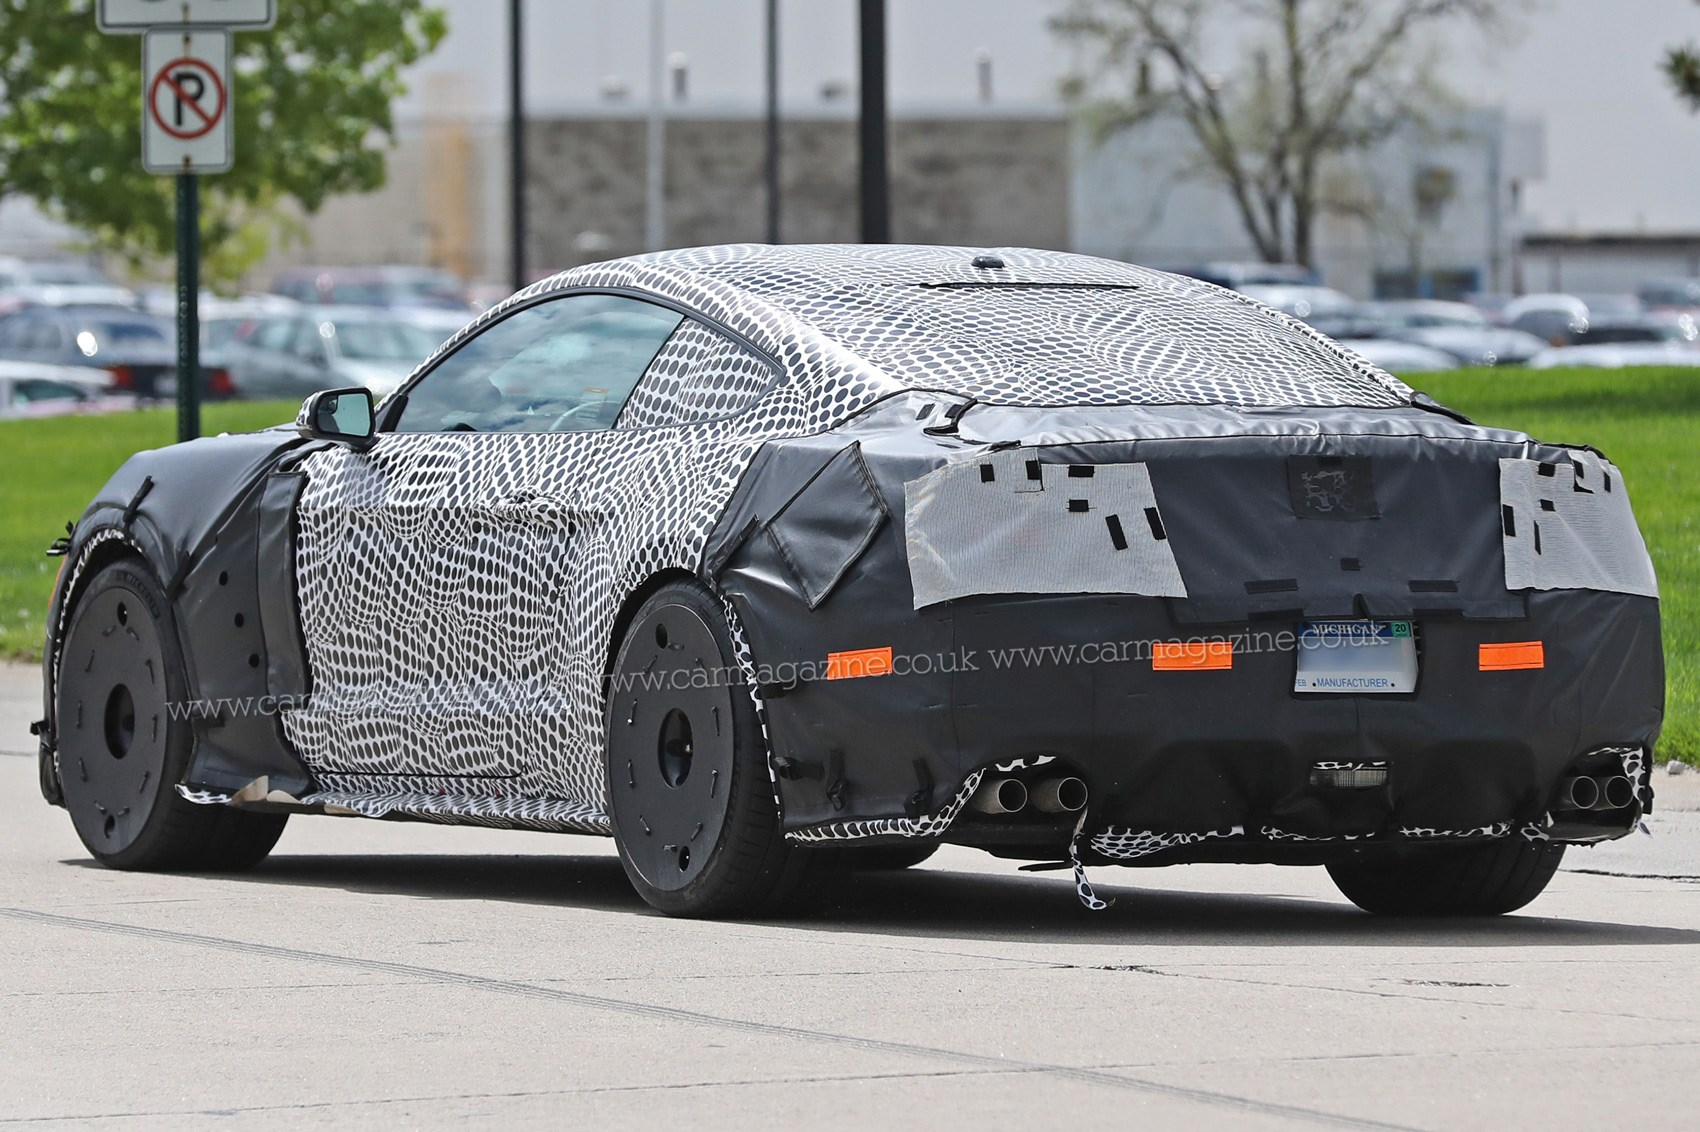 Ford Mustang GT500 (2018): spy shots and first details by CAR Magazine